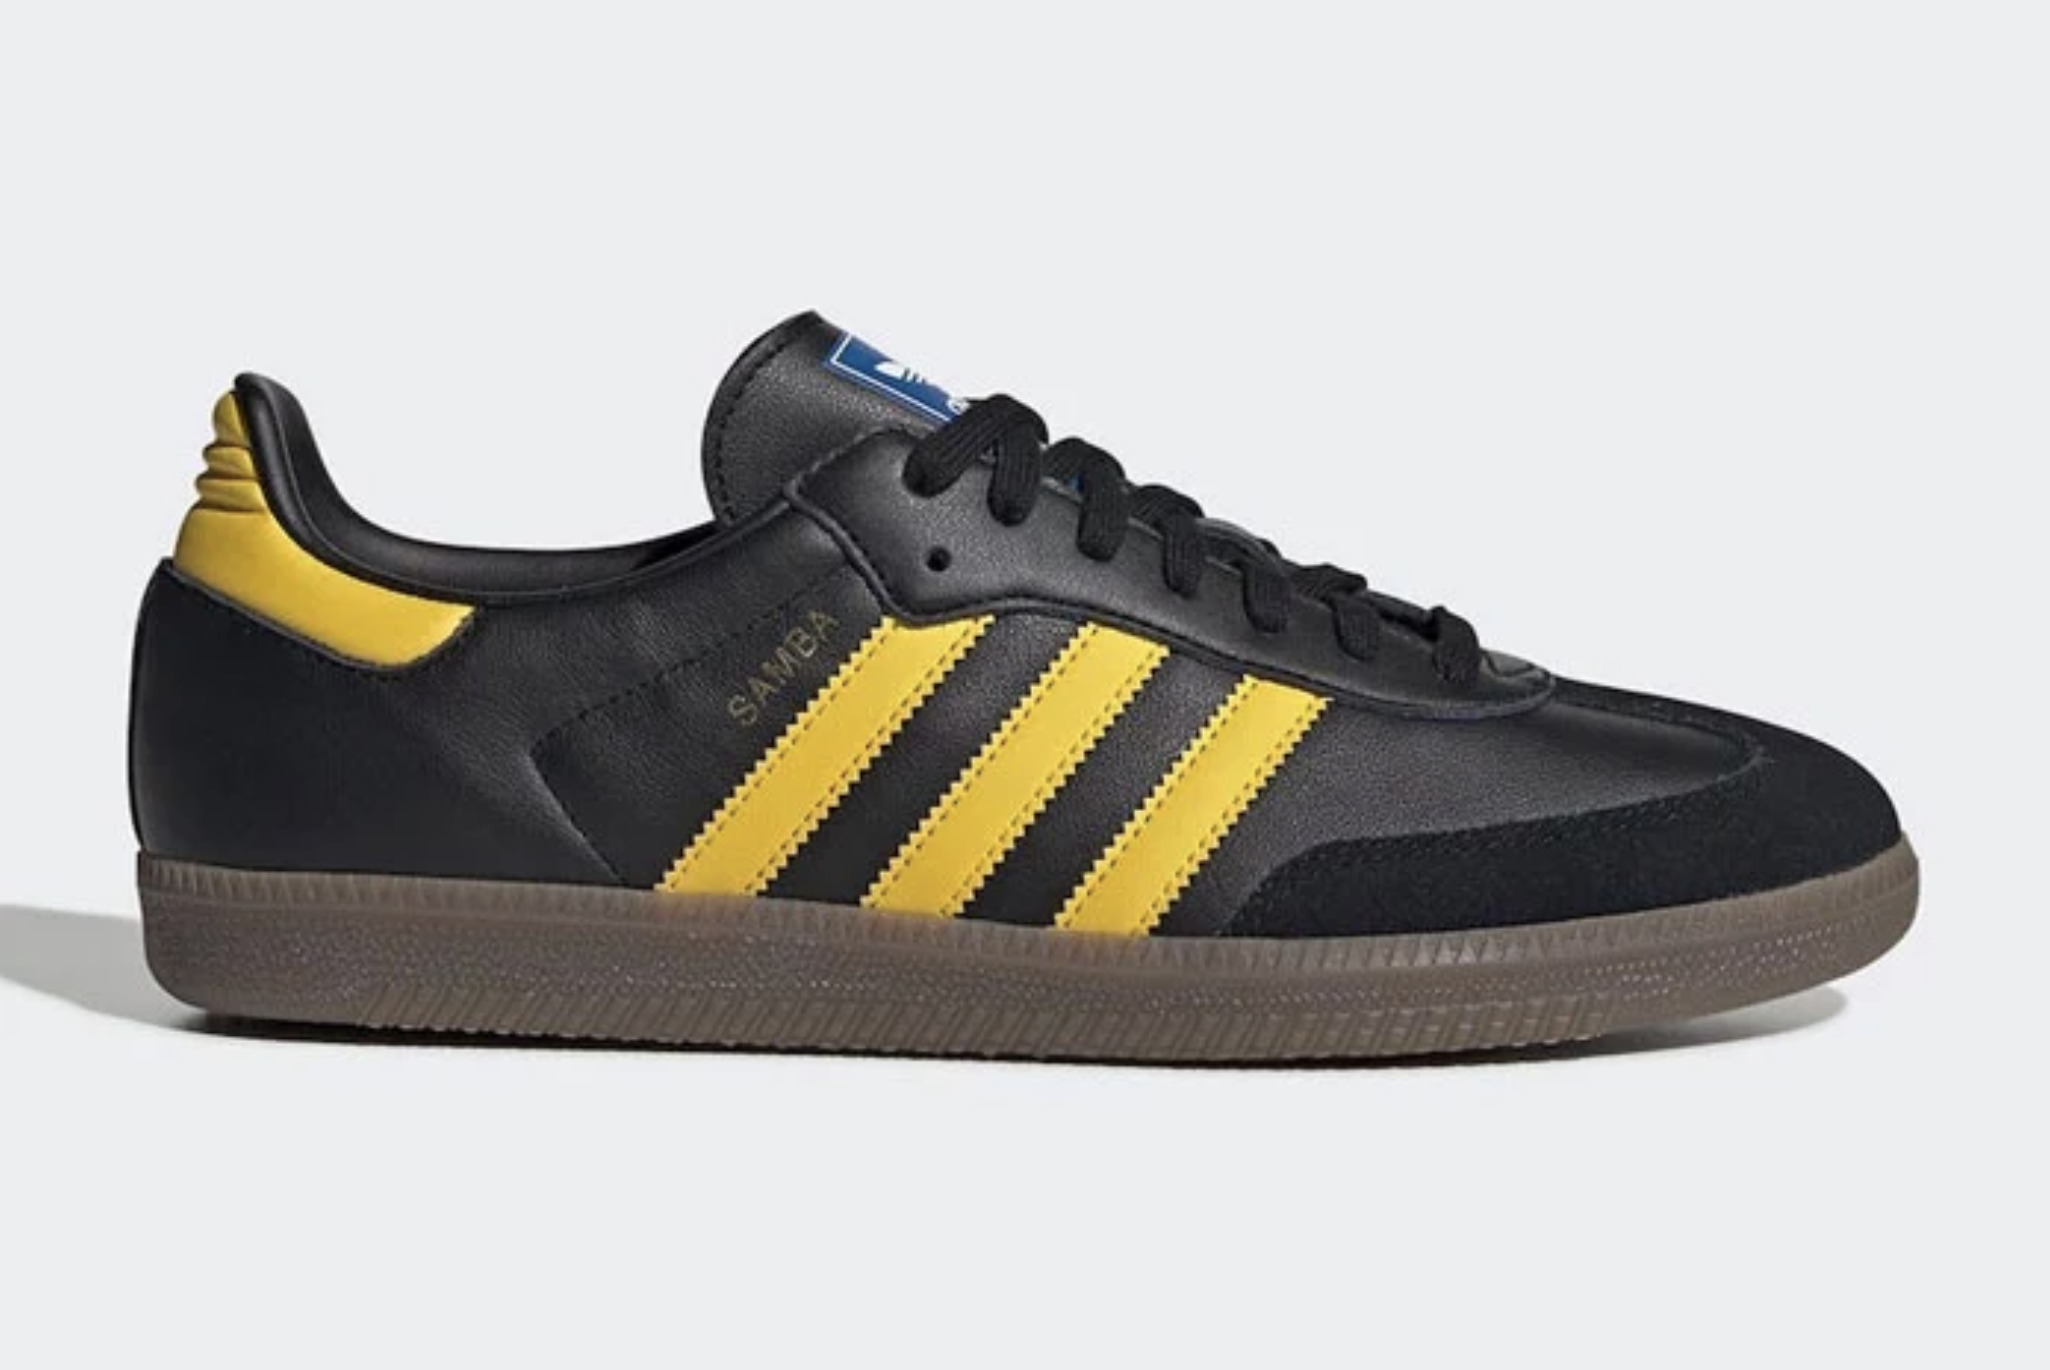 adidas Samba black/yellow